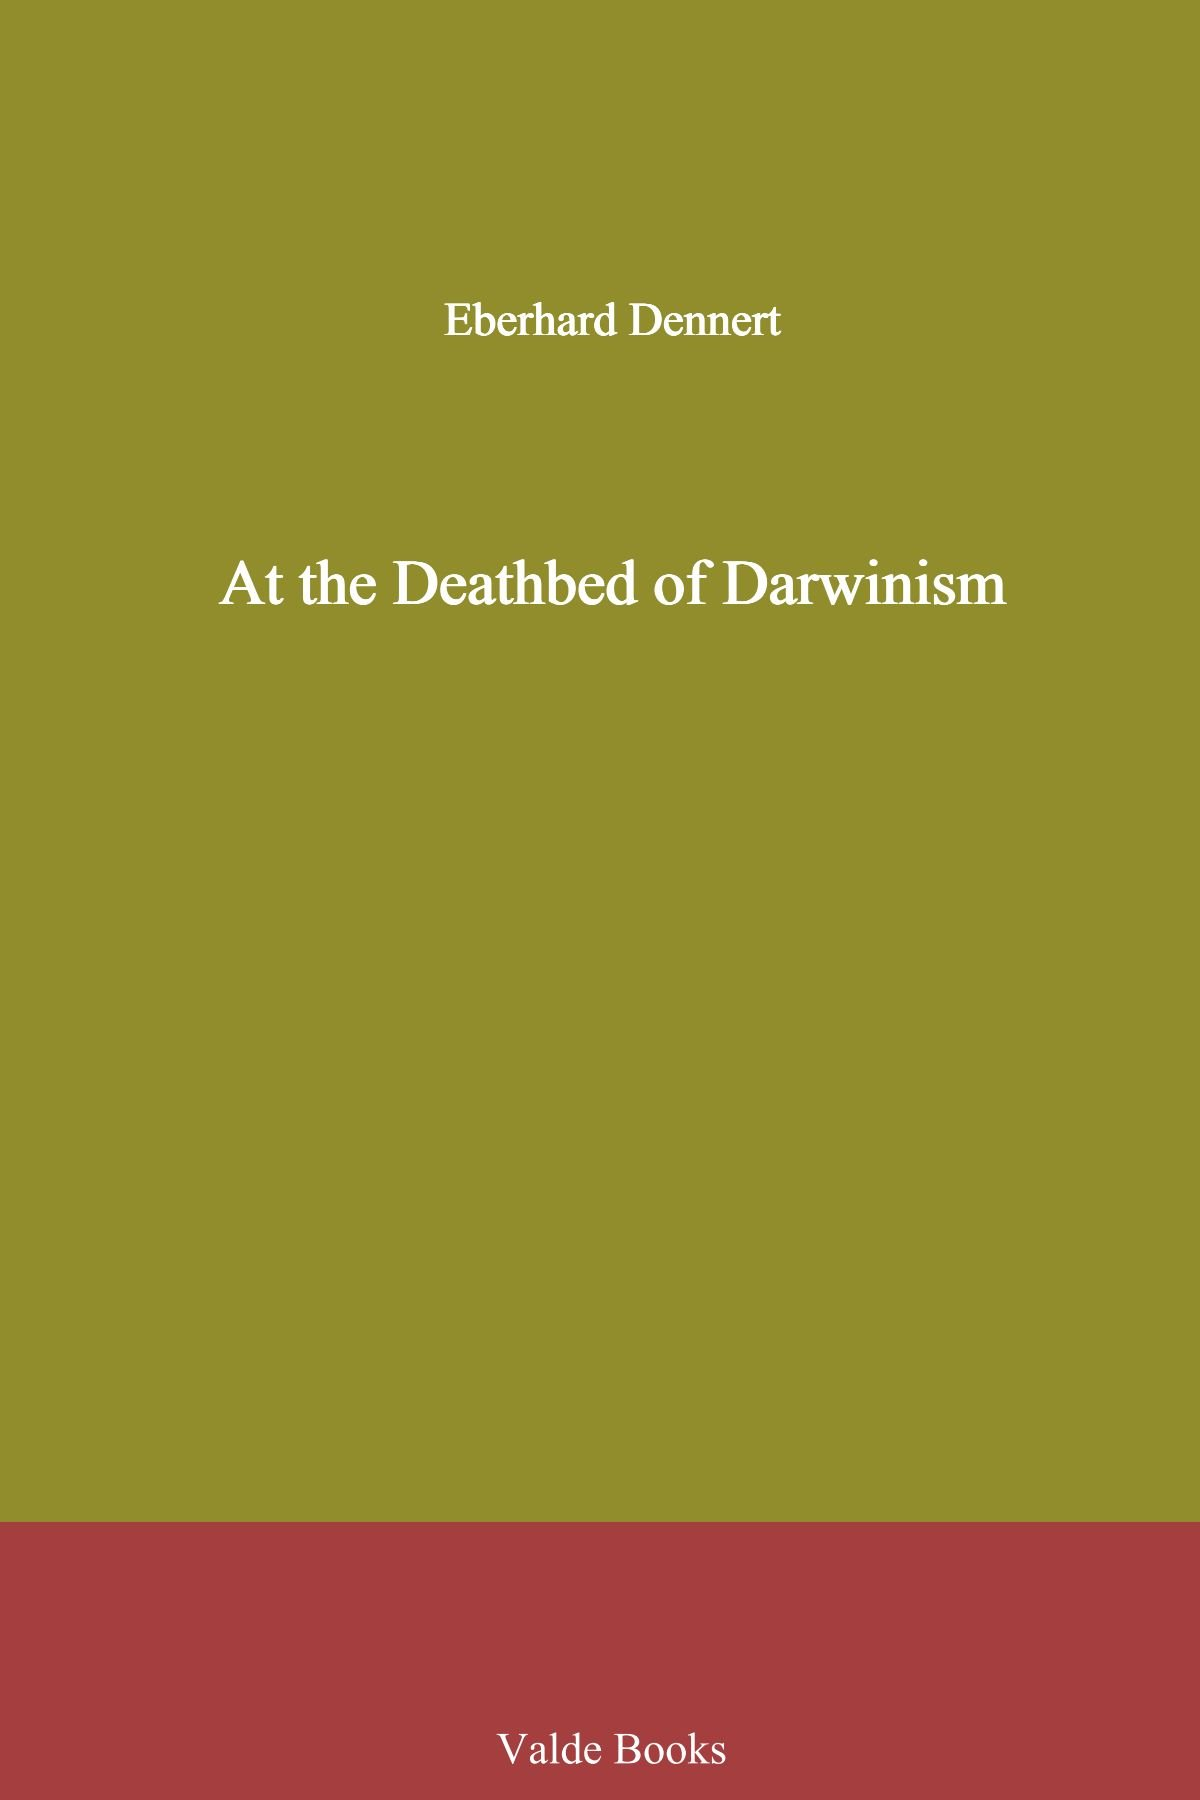 Download At the Deathbed of Darwinism PDF